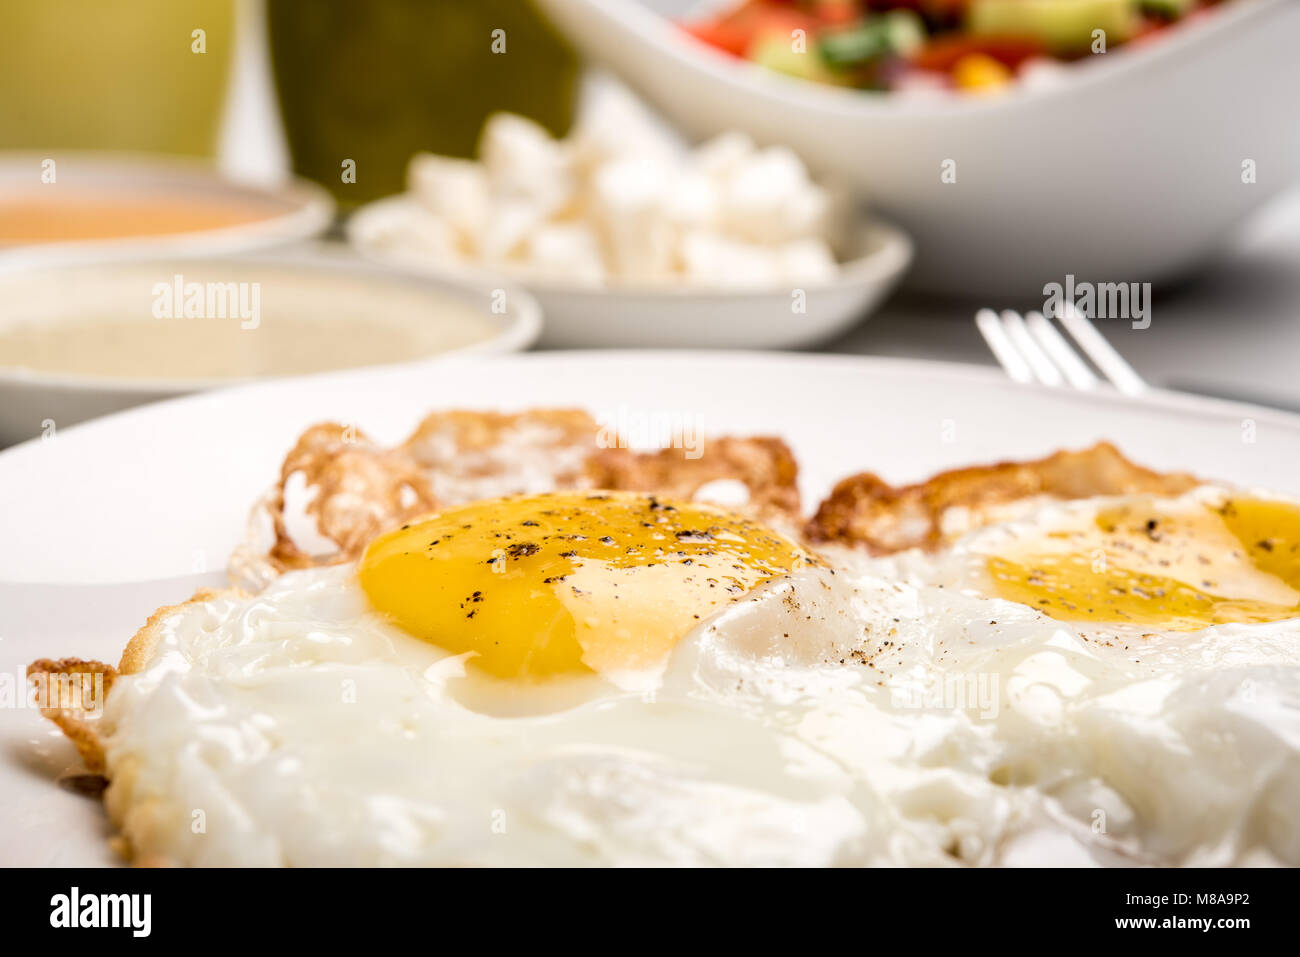 Traditional Israeli Breakfast with two fried eggs, yellow cheese, salad, a fresh roll and a cup of cappuccino. Closeup - Stock Image